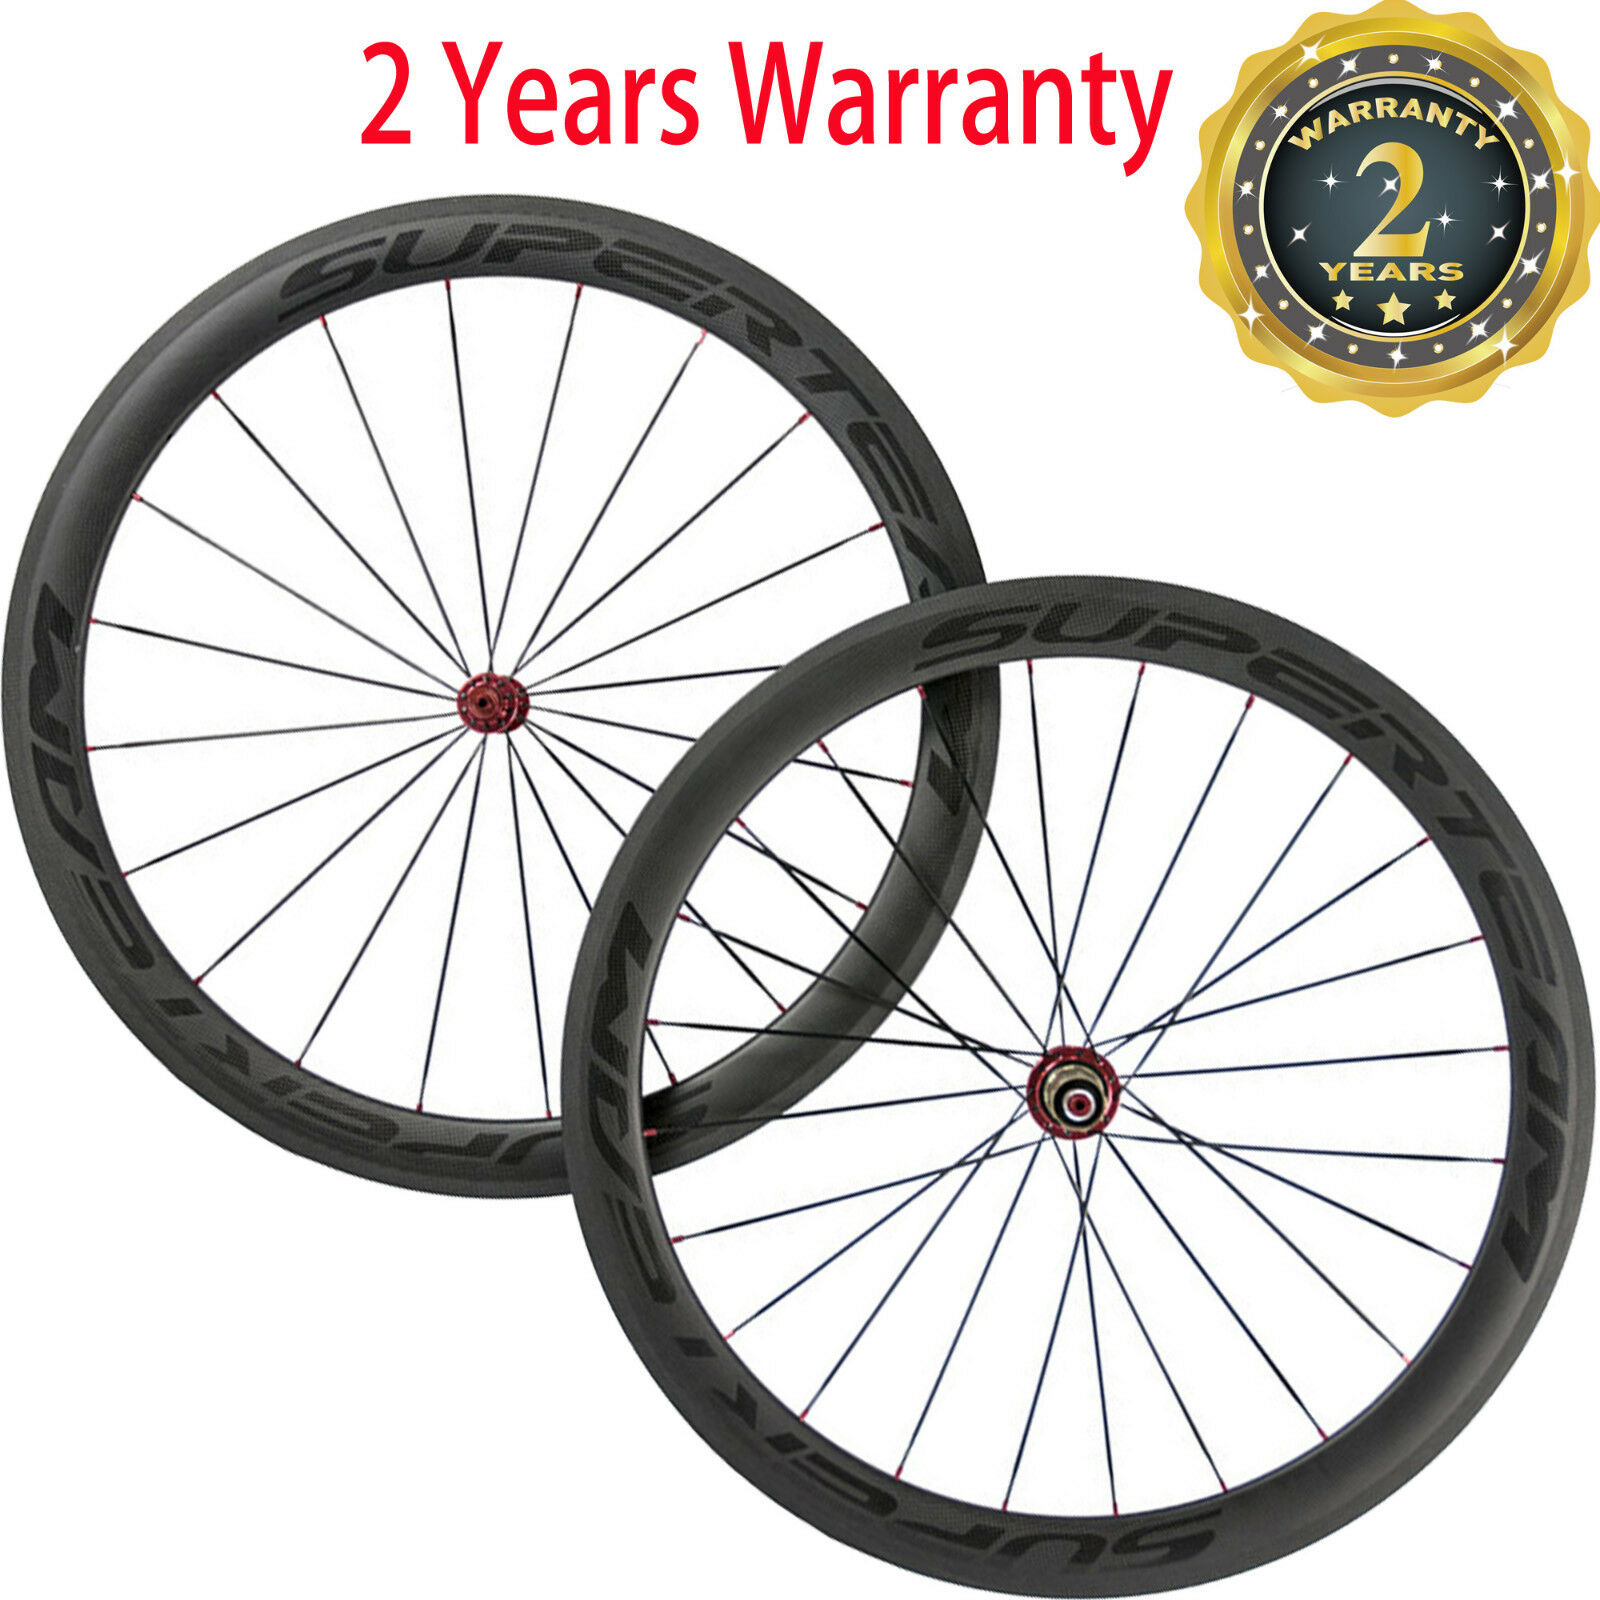 Superteam 50mm Clincher Carbon Wheels Road Bike Cycling Wheelset 700C  Bicycle  best prices